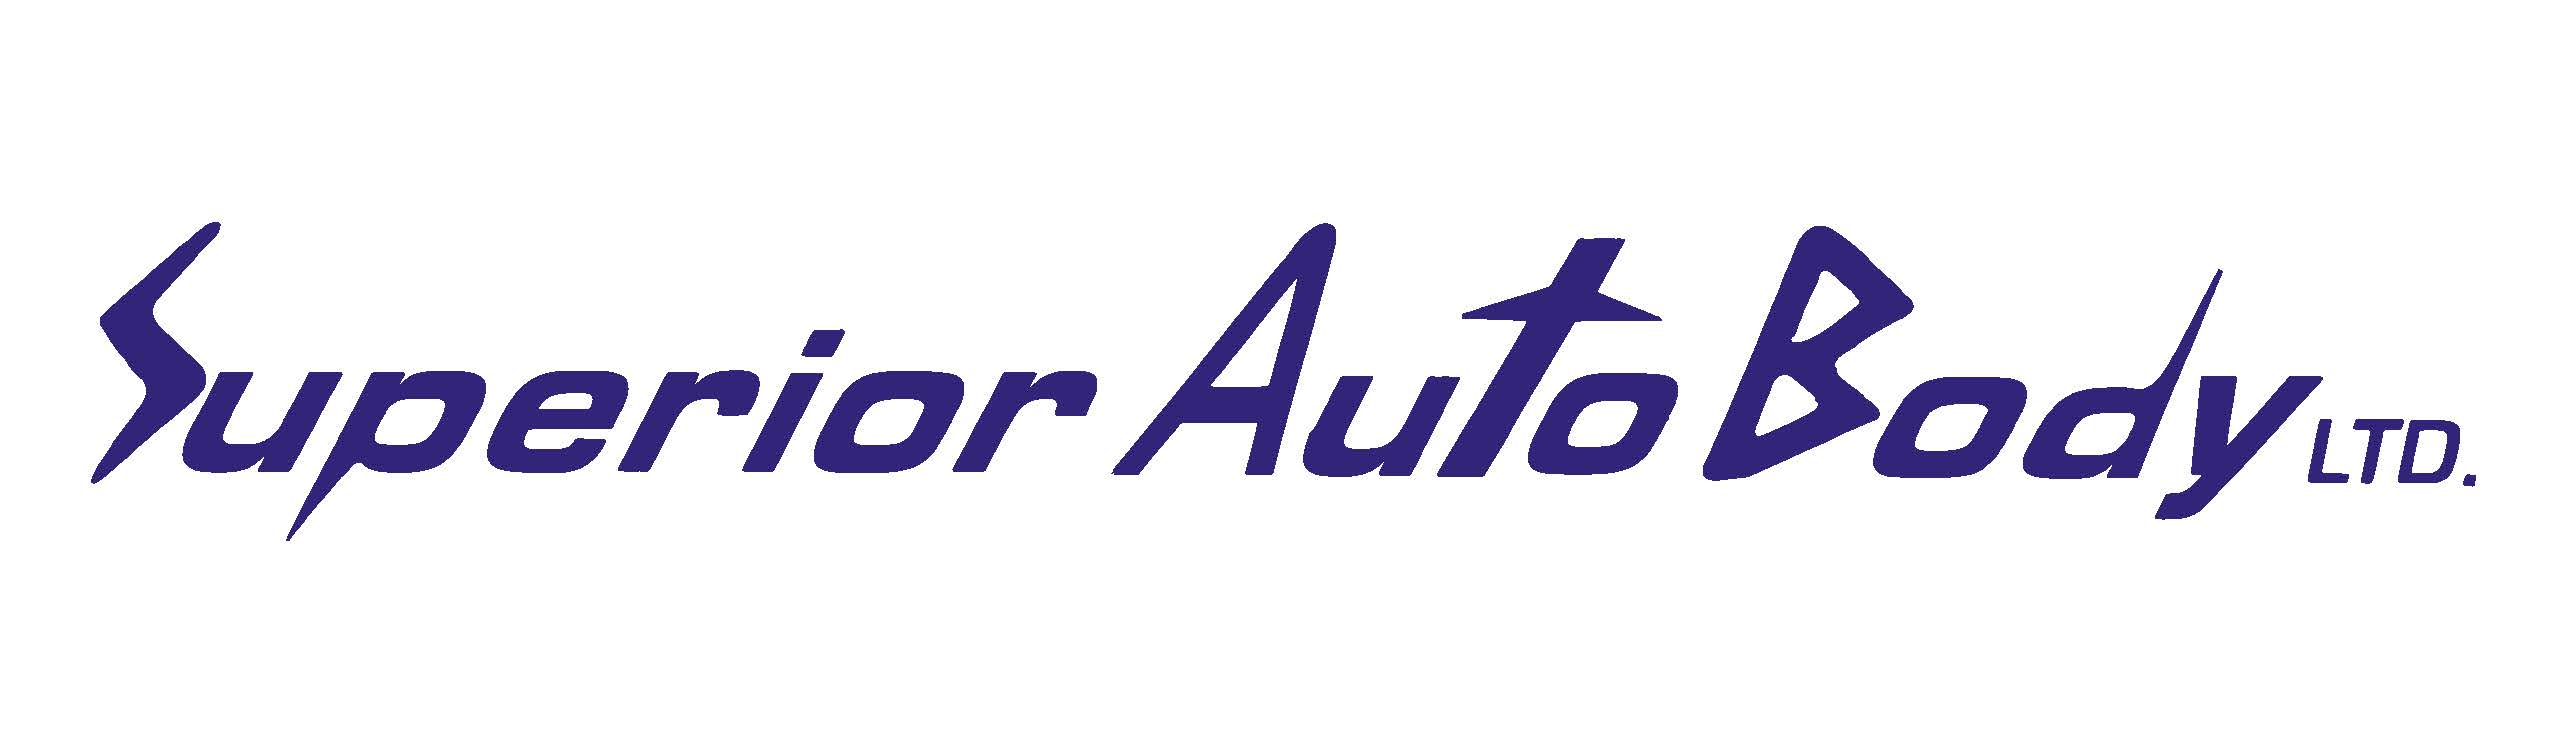 Superior Auto Body Ltd.